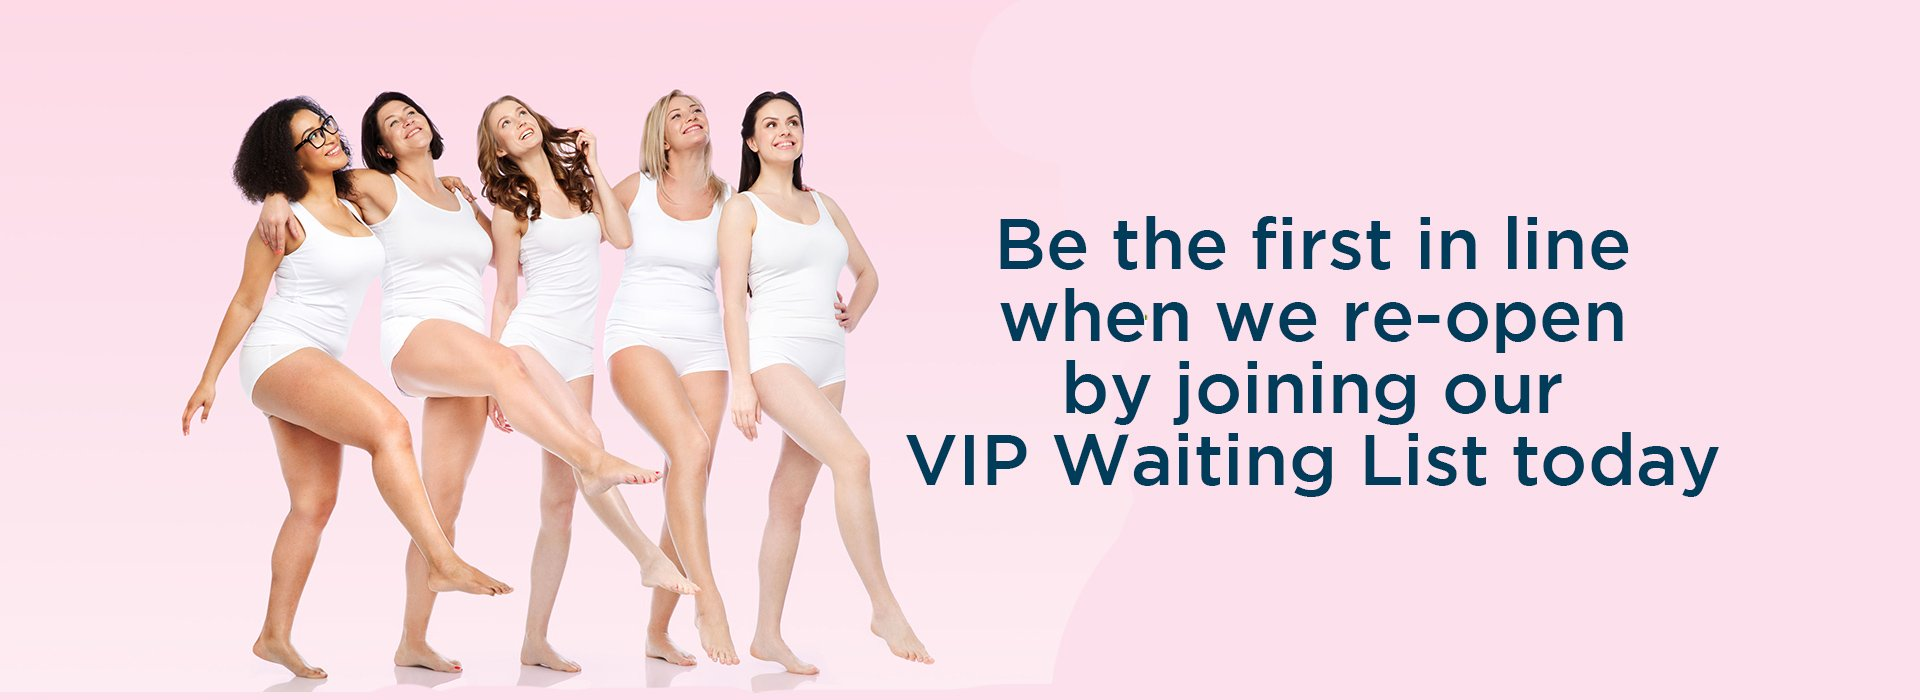 Join the VIP Waiting List at Helen Taylor Aesthetics Clinic in Rugby, Warwickshire for Anti-Ageing Treatments, Dermal Fillers and Fat Freezing Treatments